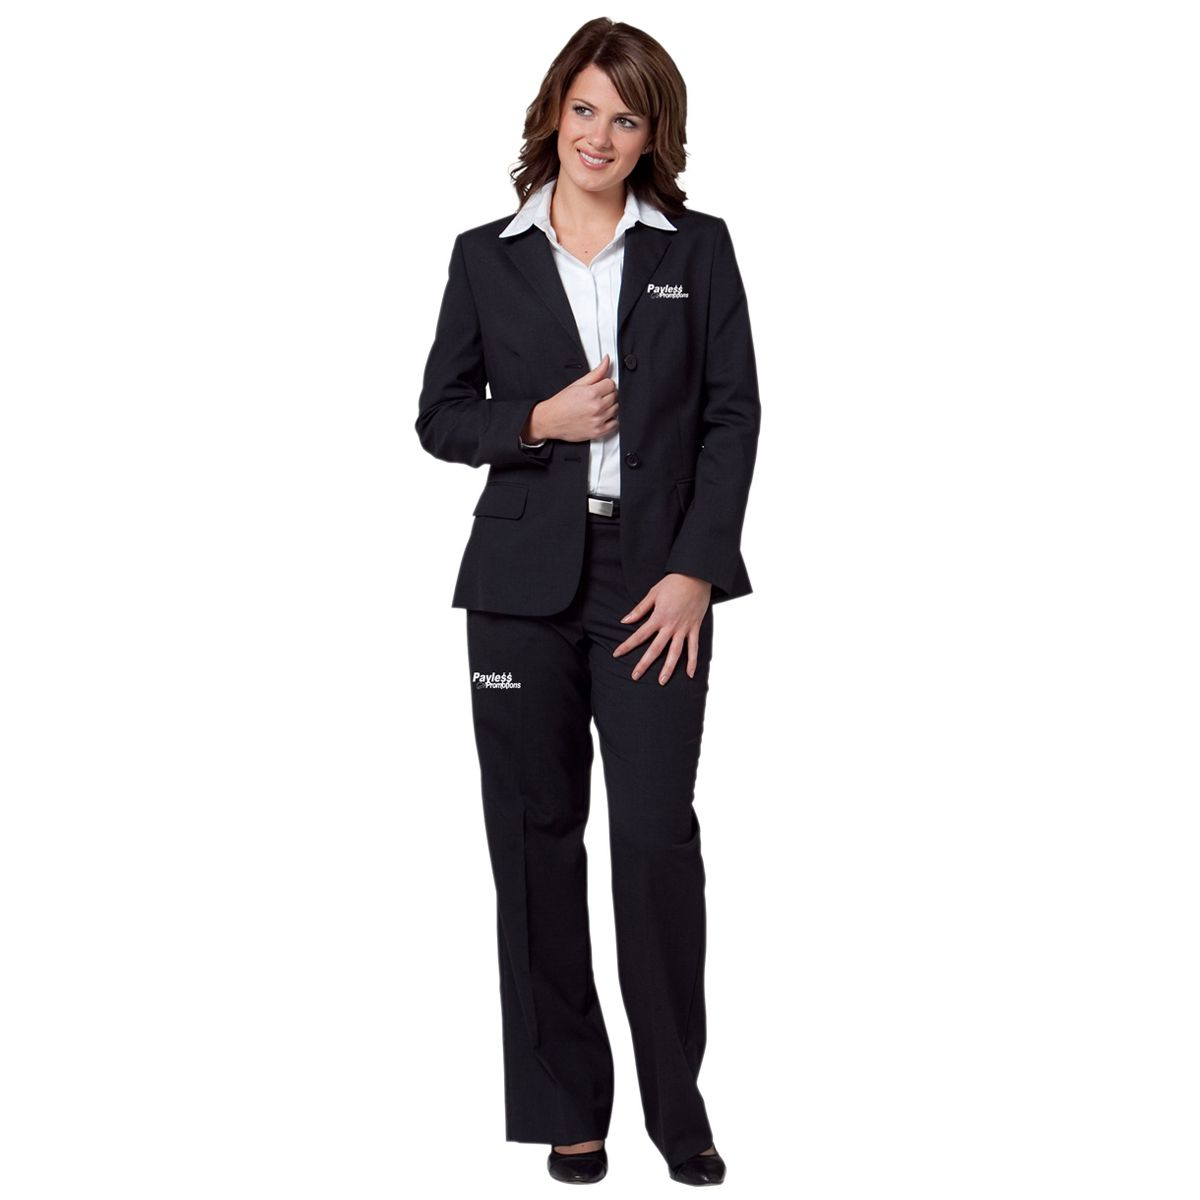 M9206 Ladies Poly/Viscose Two Button Suit Jackets